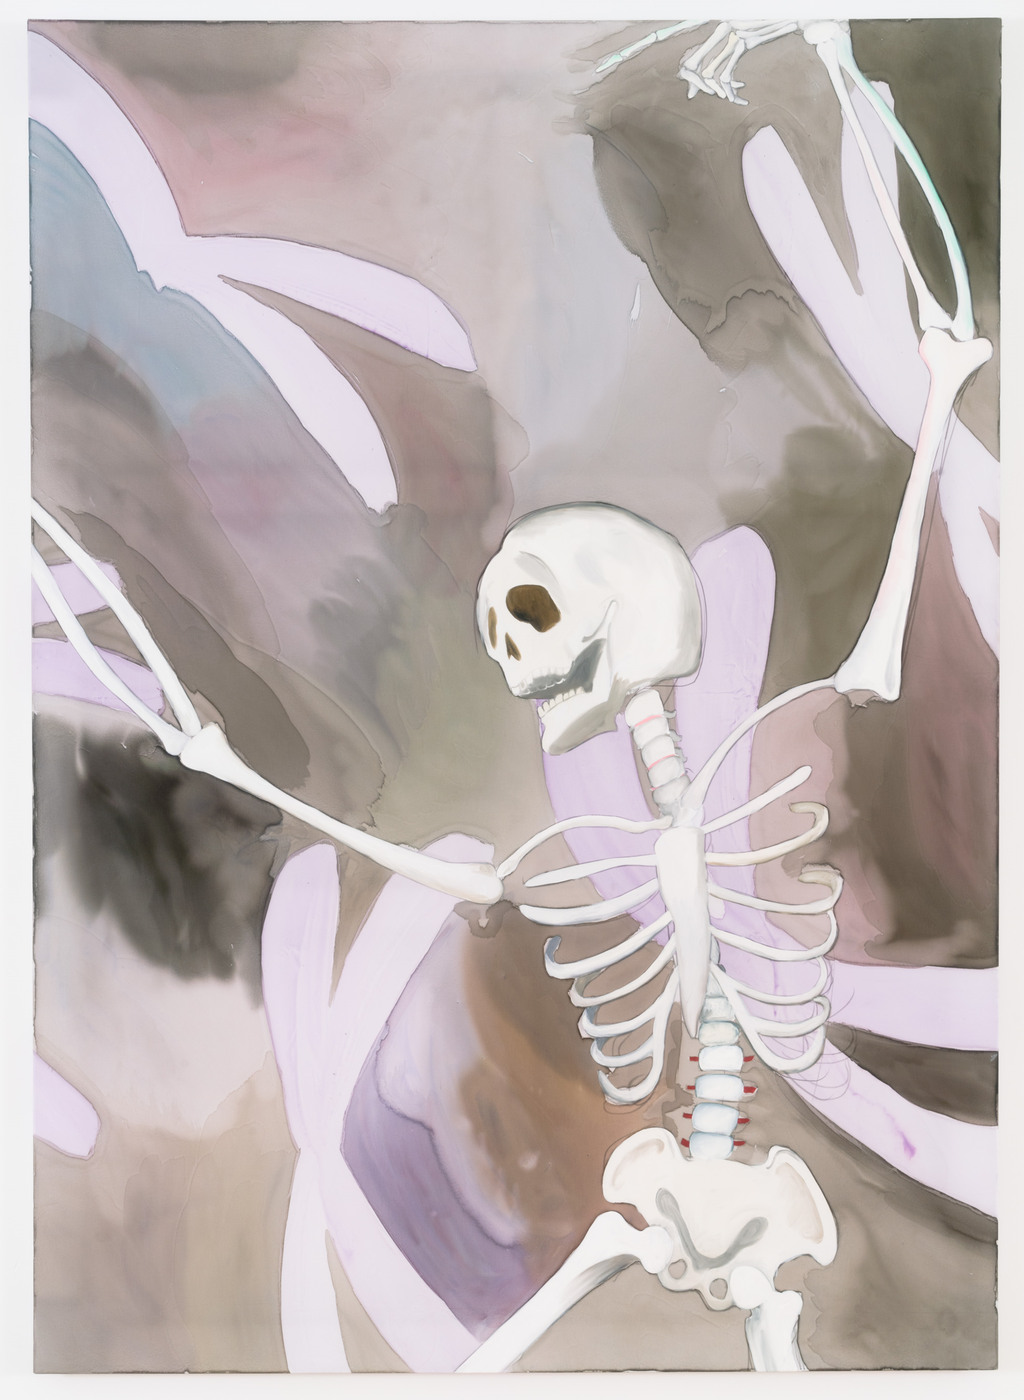 Ph Drunk Skeleton copy